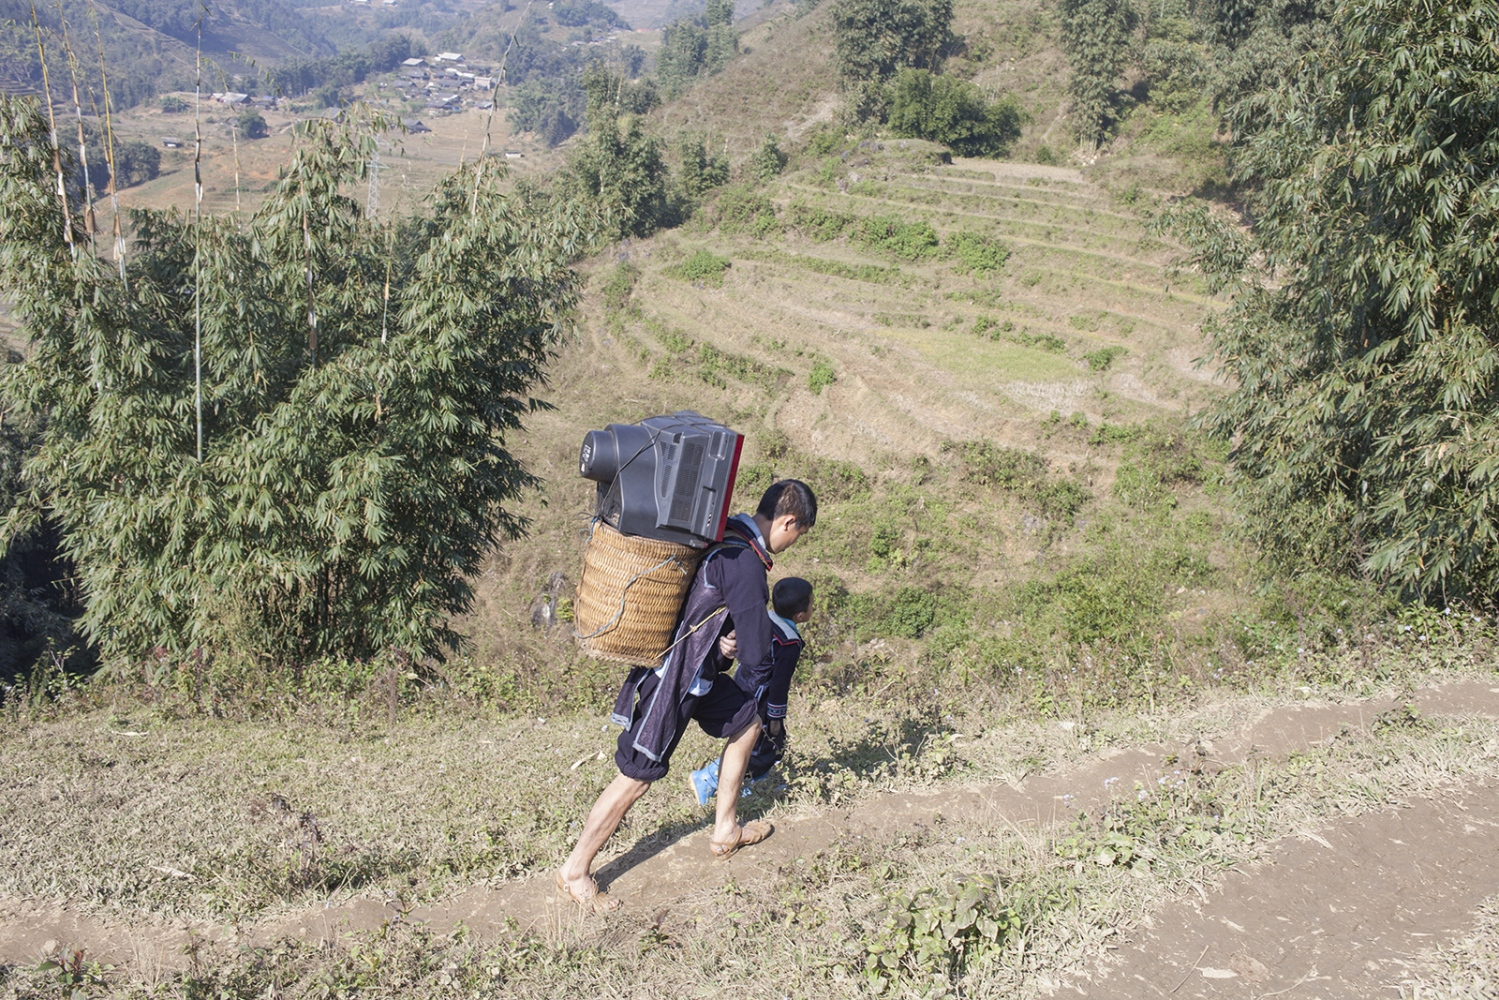 Man carrying a TV up the steep hills.